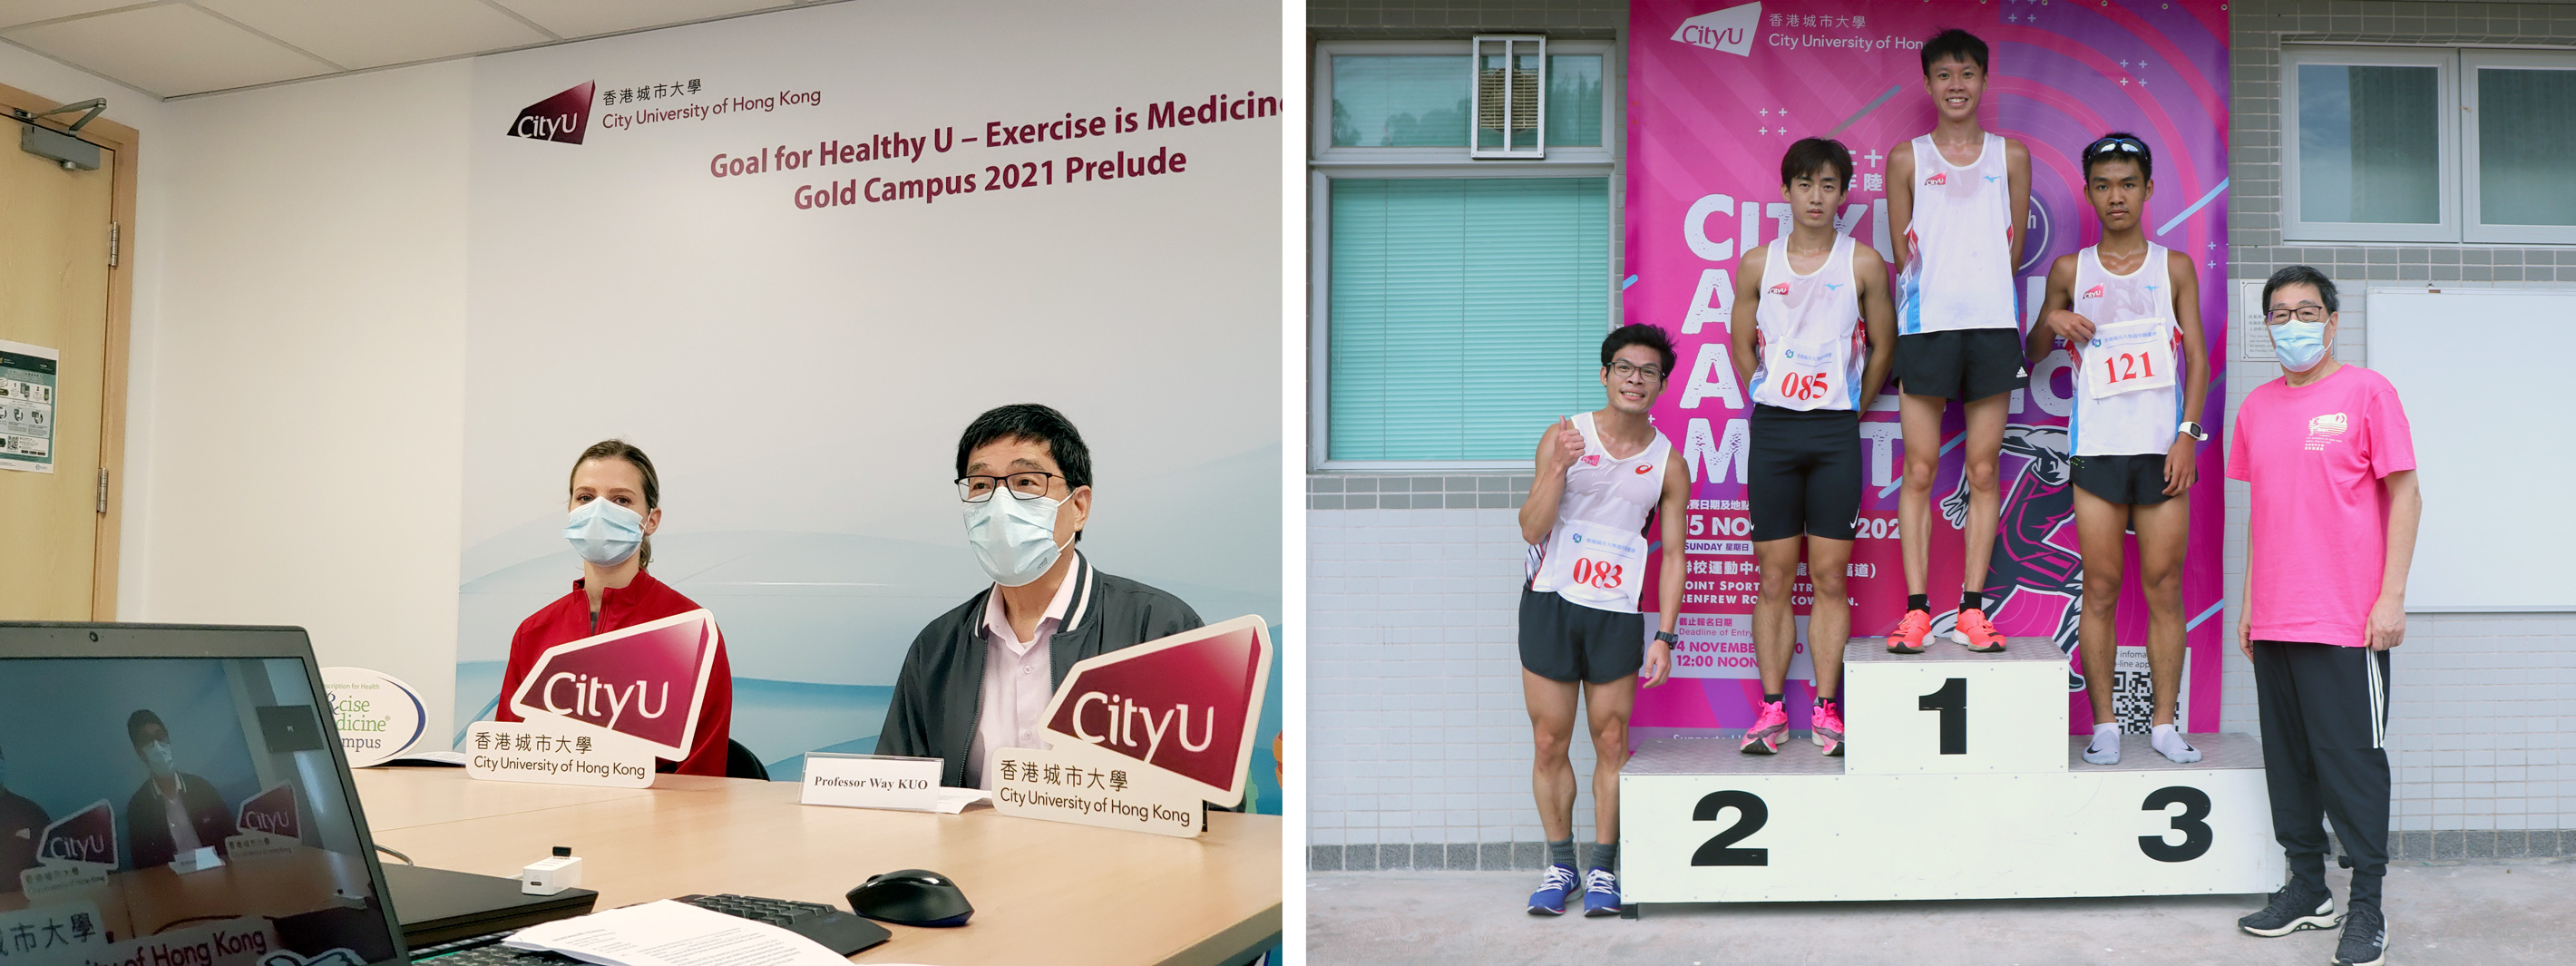 President Kuo attends the EIM Gold Campus 2021 Virtual Prelude (photo on the left). Supporting CityU athletes.